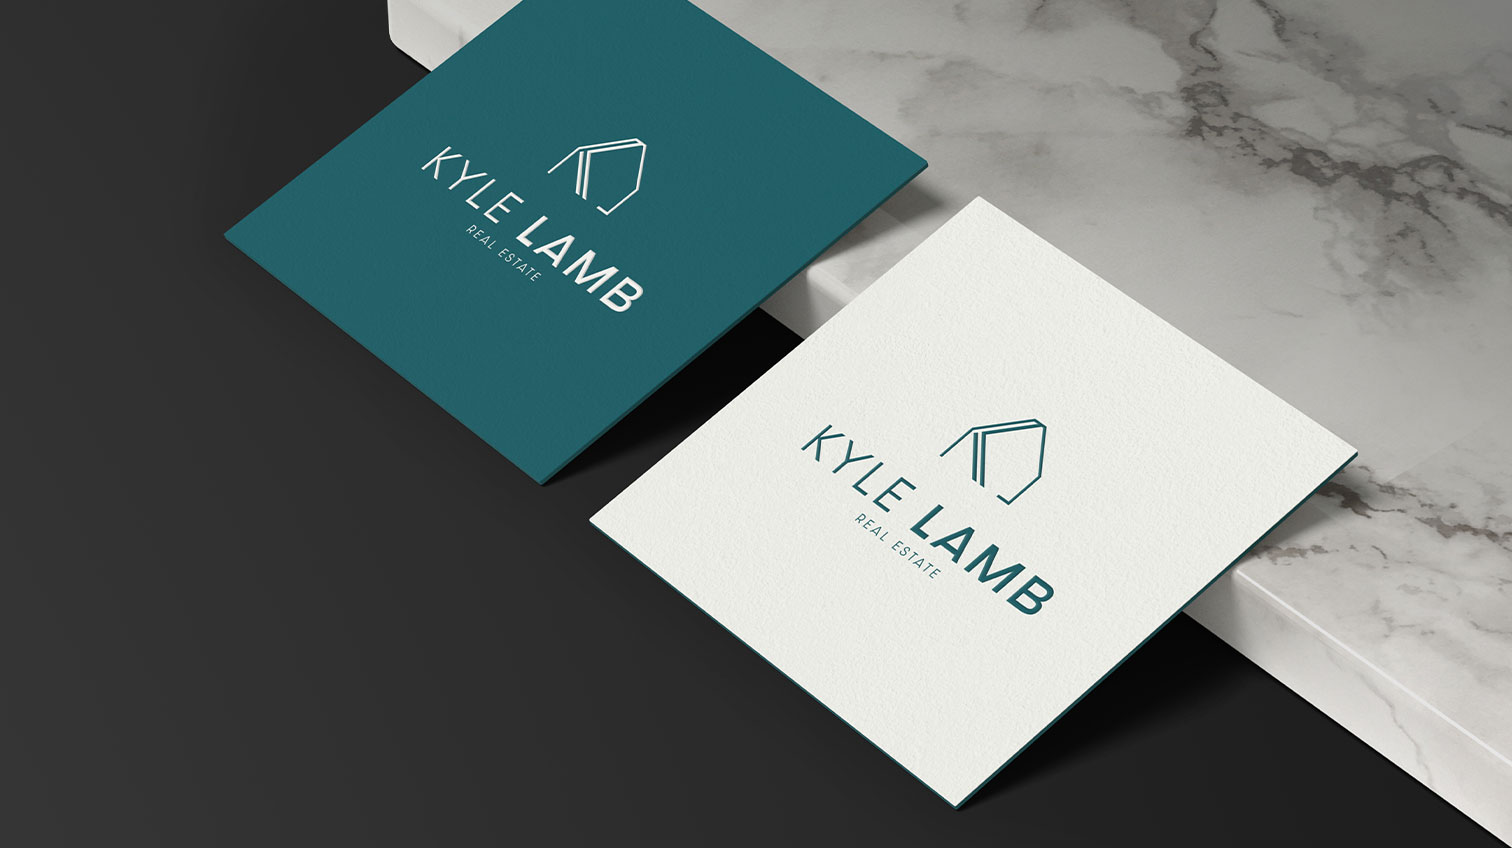 Kyle Lamb logo on white and blue paper - White canvas design